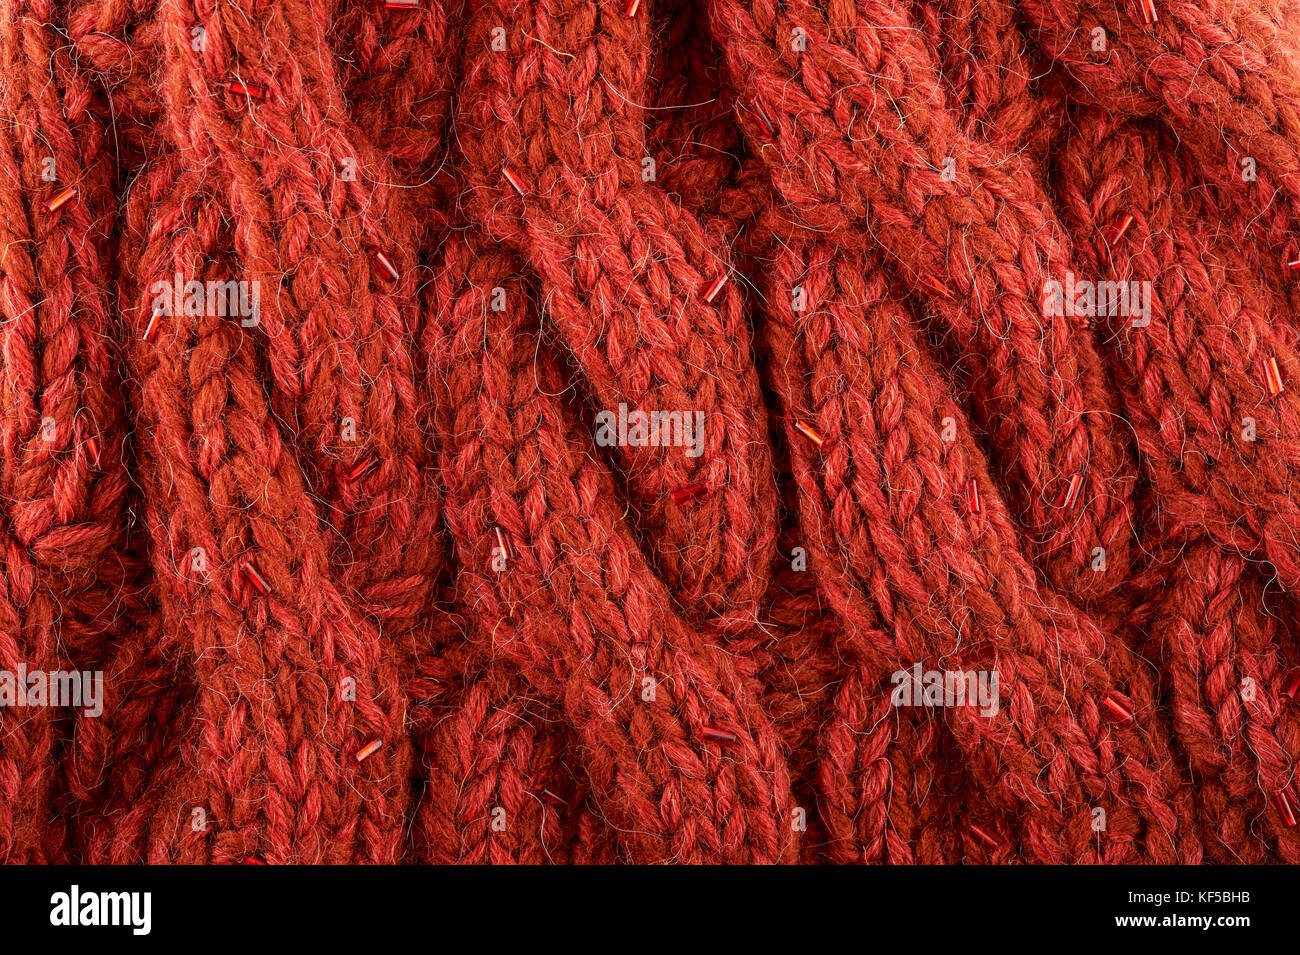 Knitting Background Texture : Knit texture stock photos images alamy